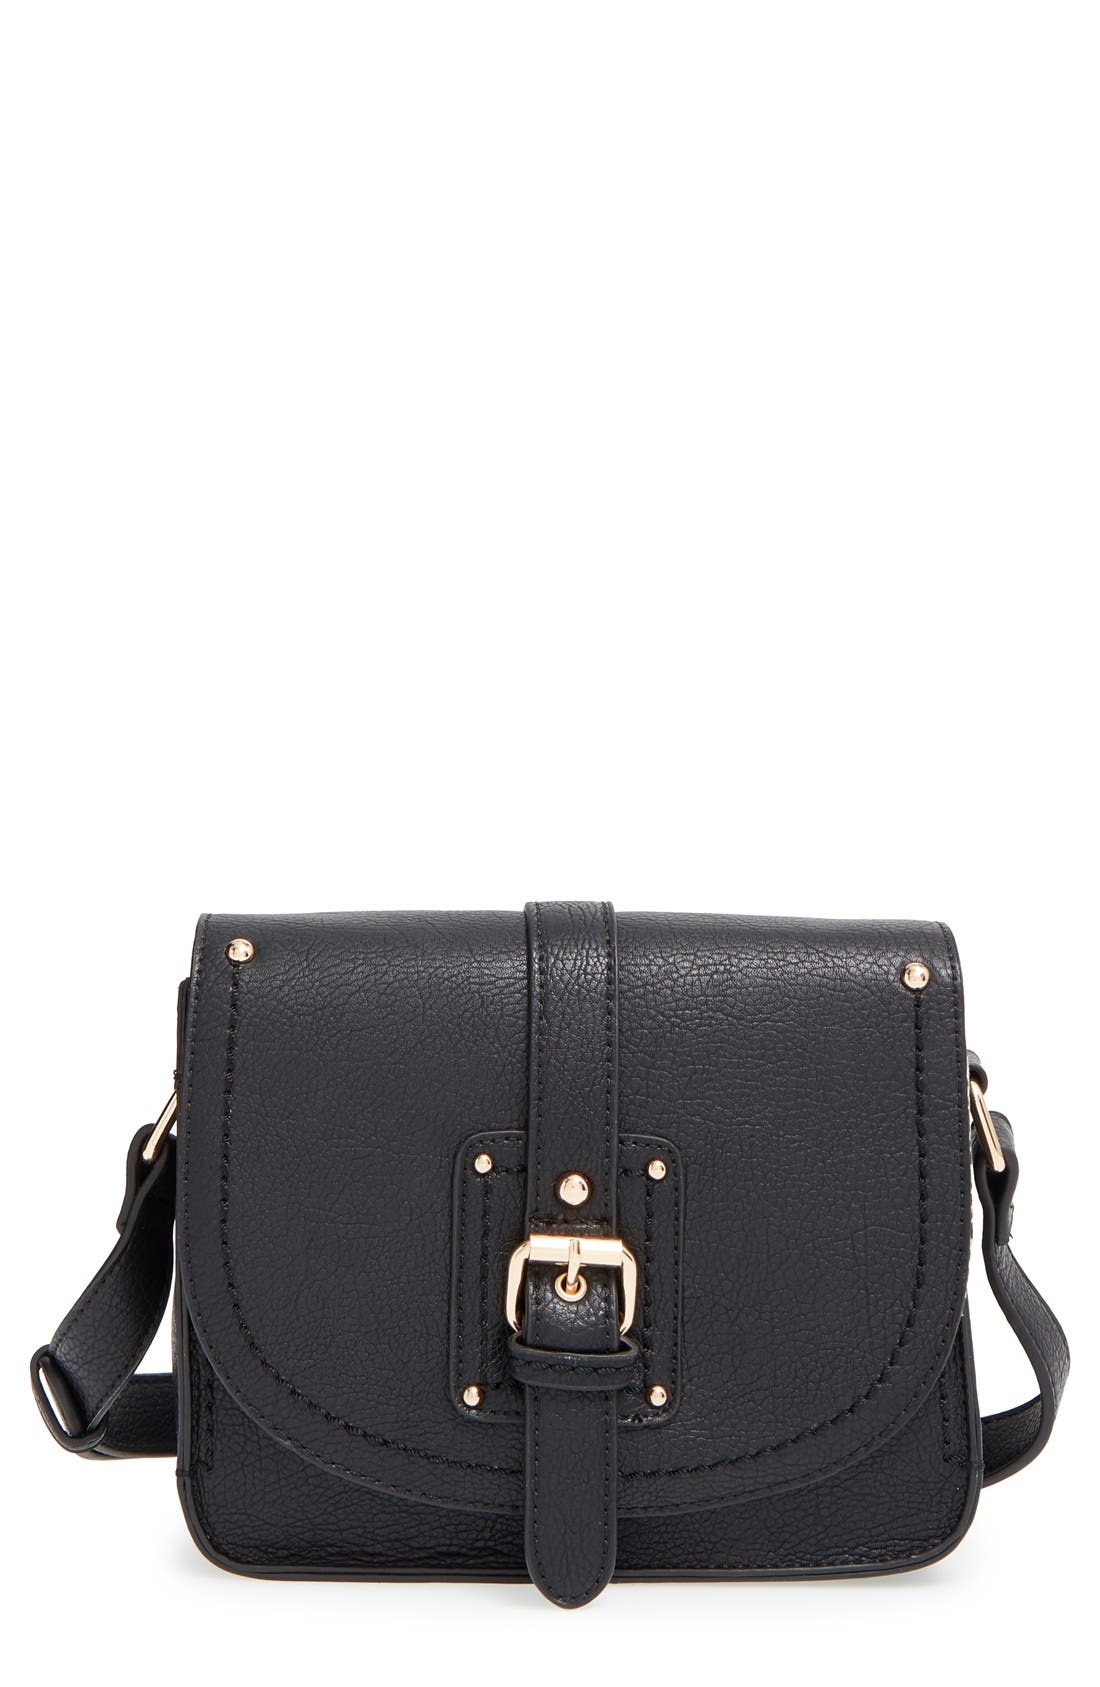 Main Image - Sole Society 'Saylah' Structured Faux Leather Crossbody Bag